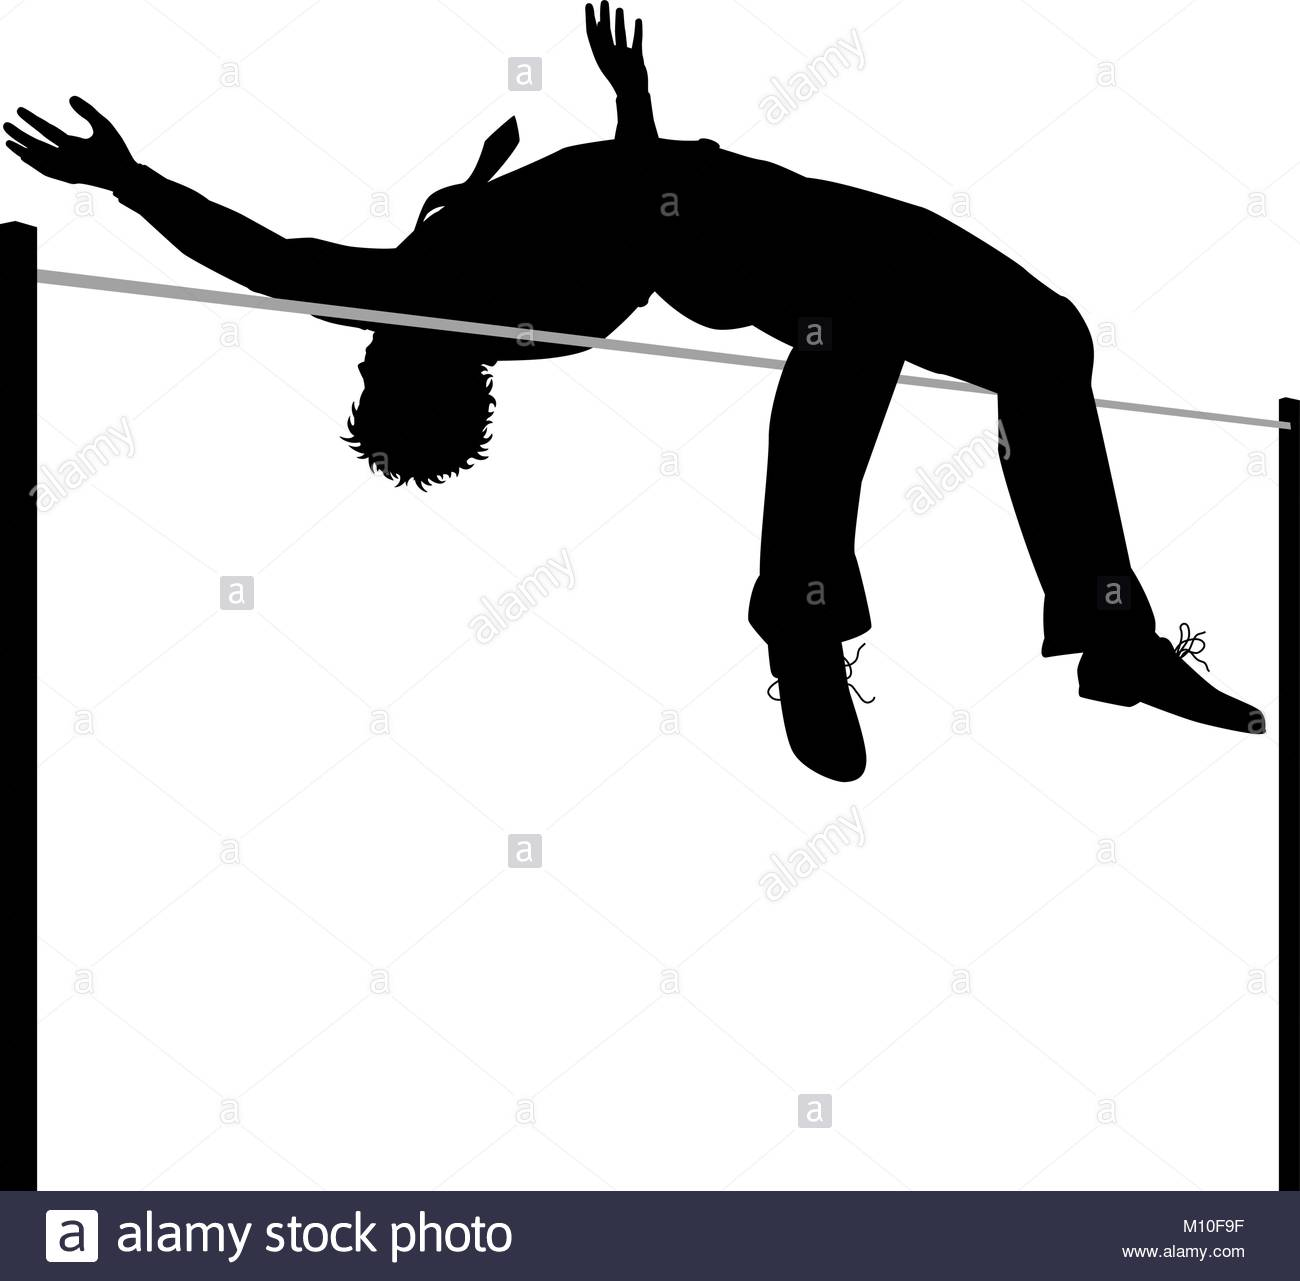 1300x1281 High Jump Stock Vector Images